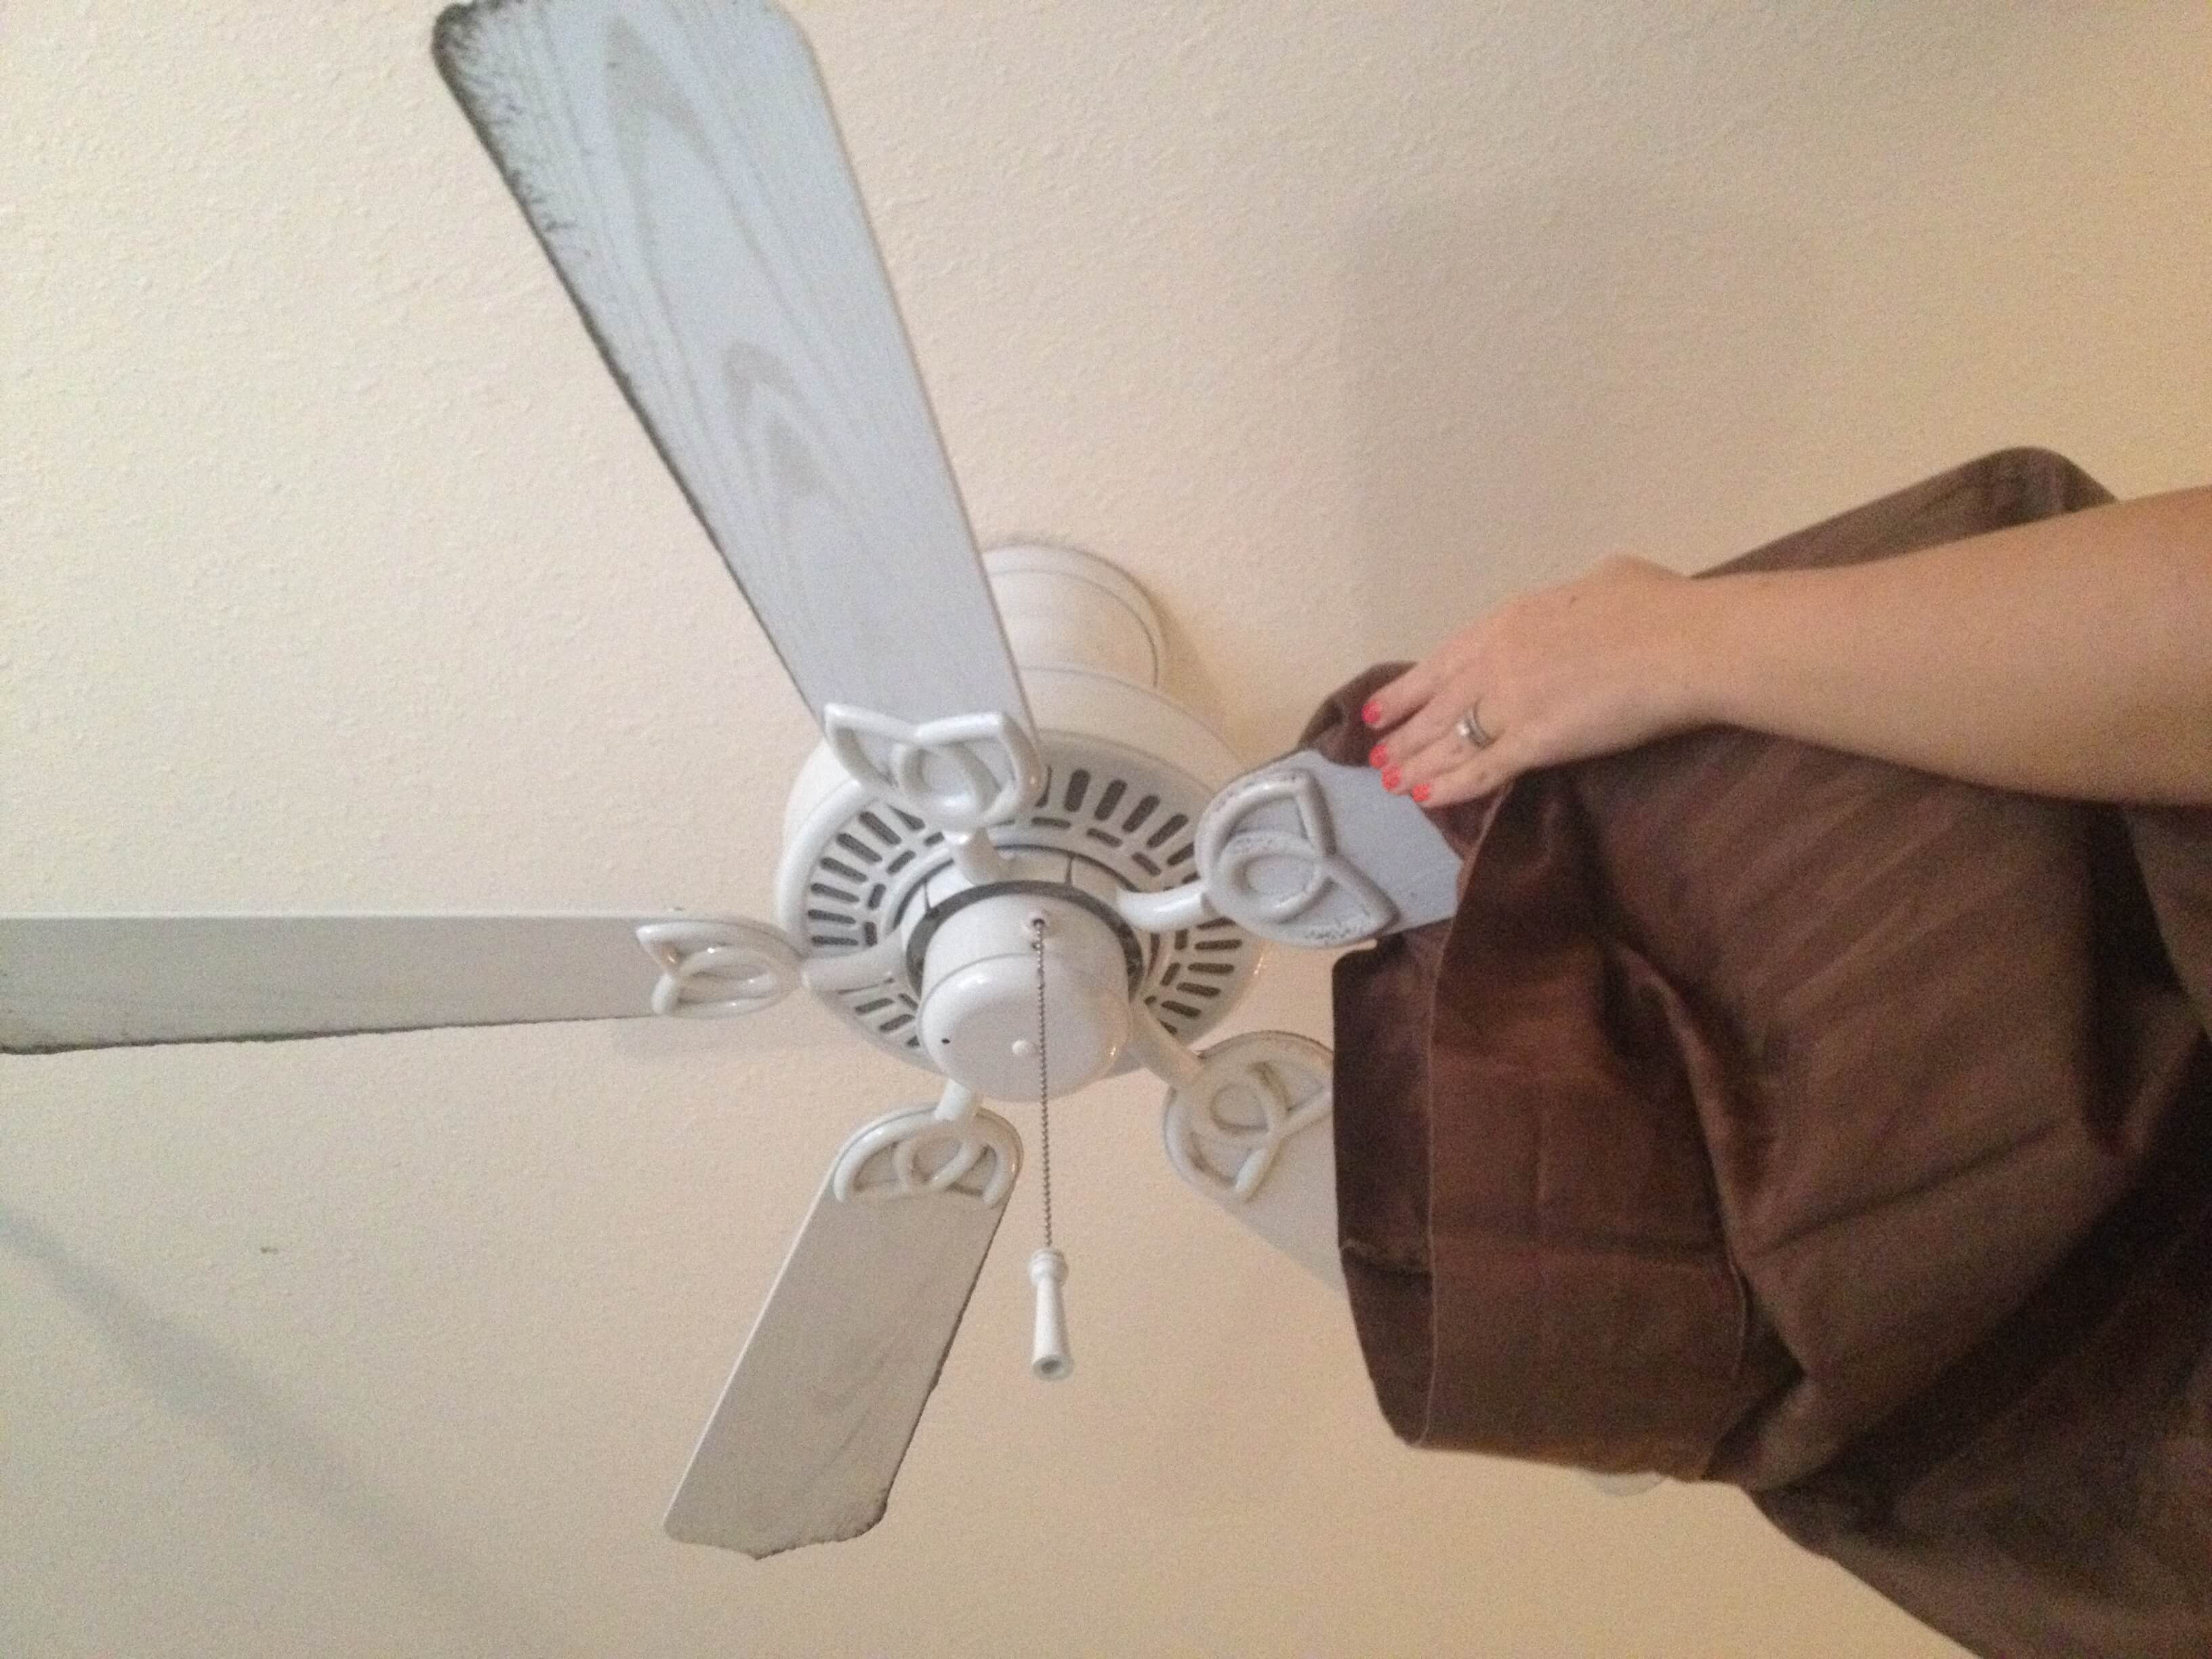 Remember to clean both sides of the fan